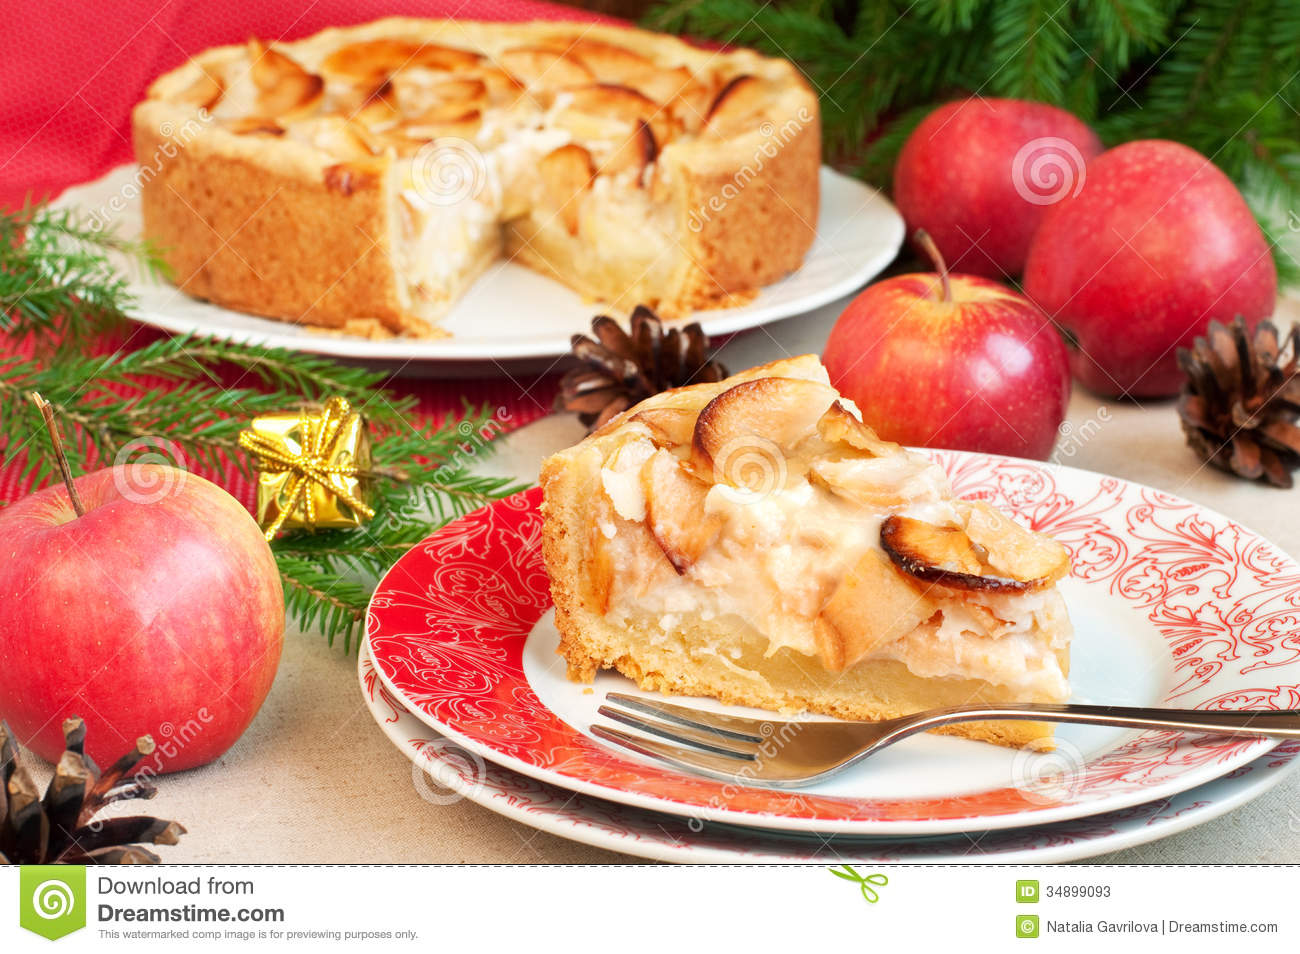 Christmas cake stock photos image 34899093 for Apple pie decoration